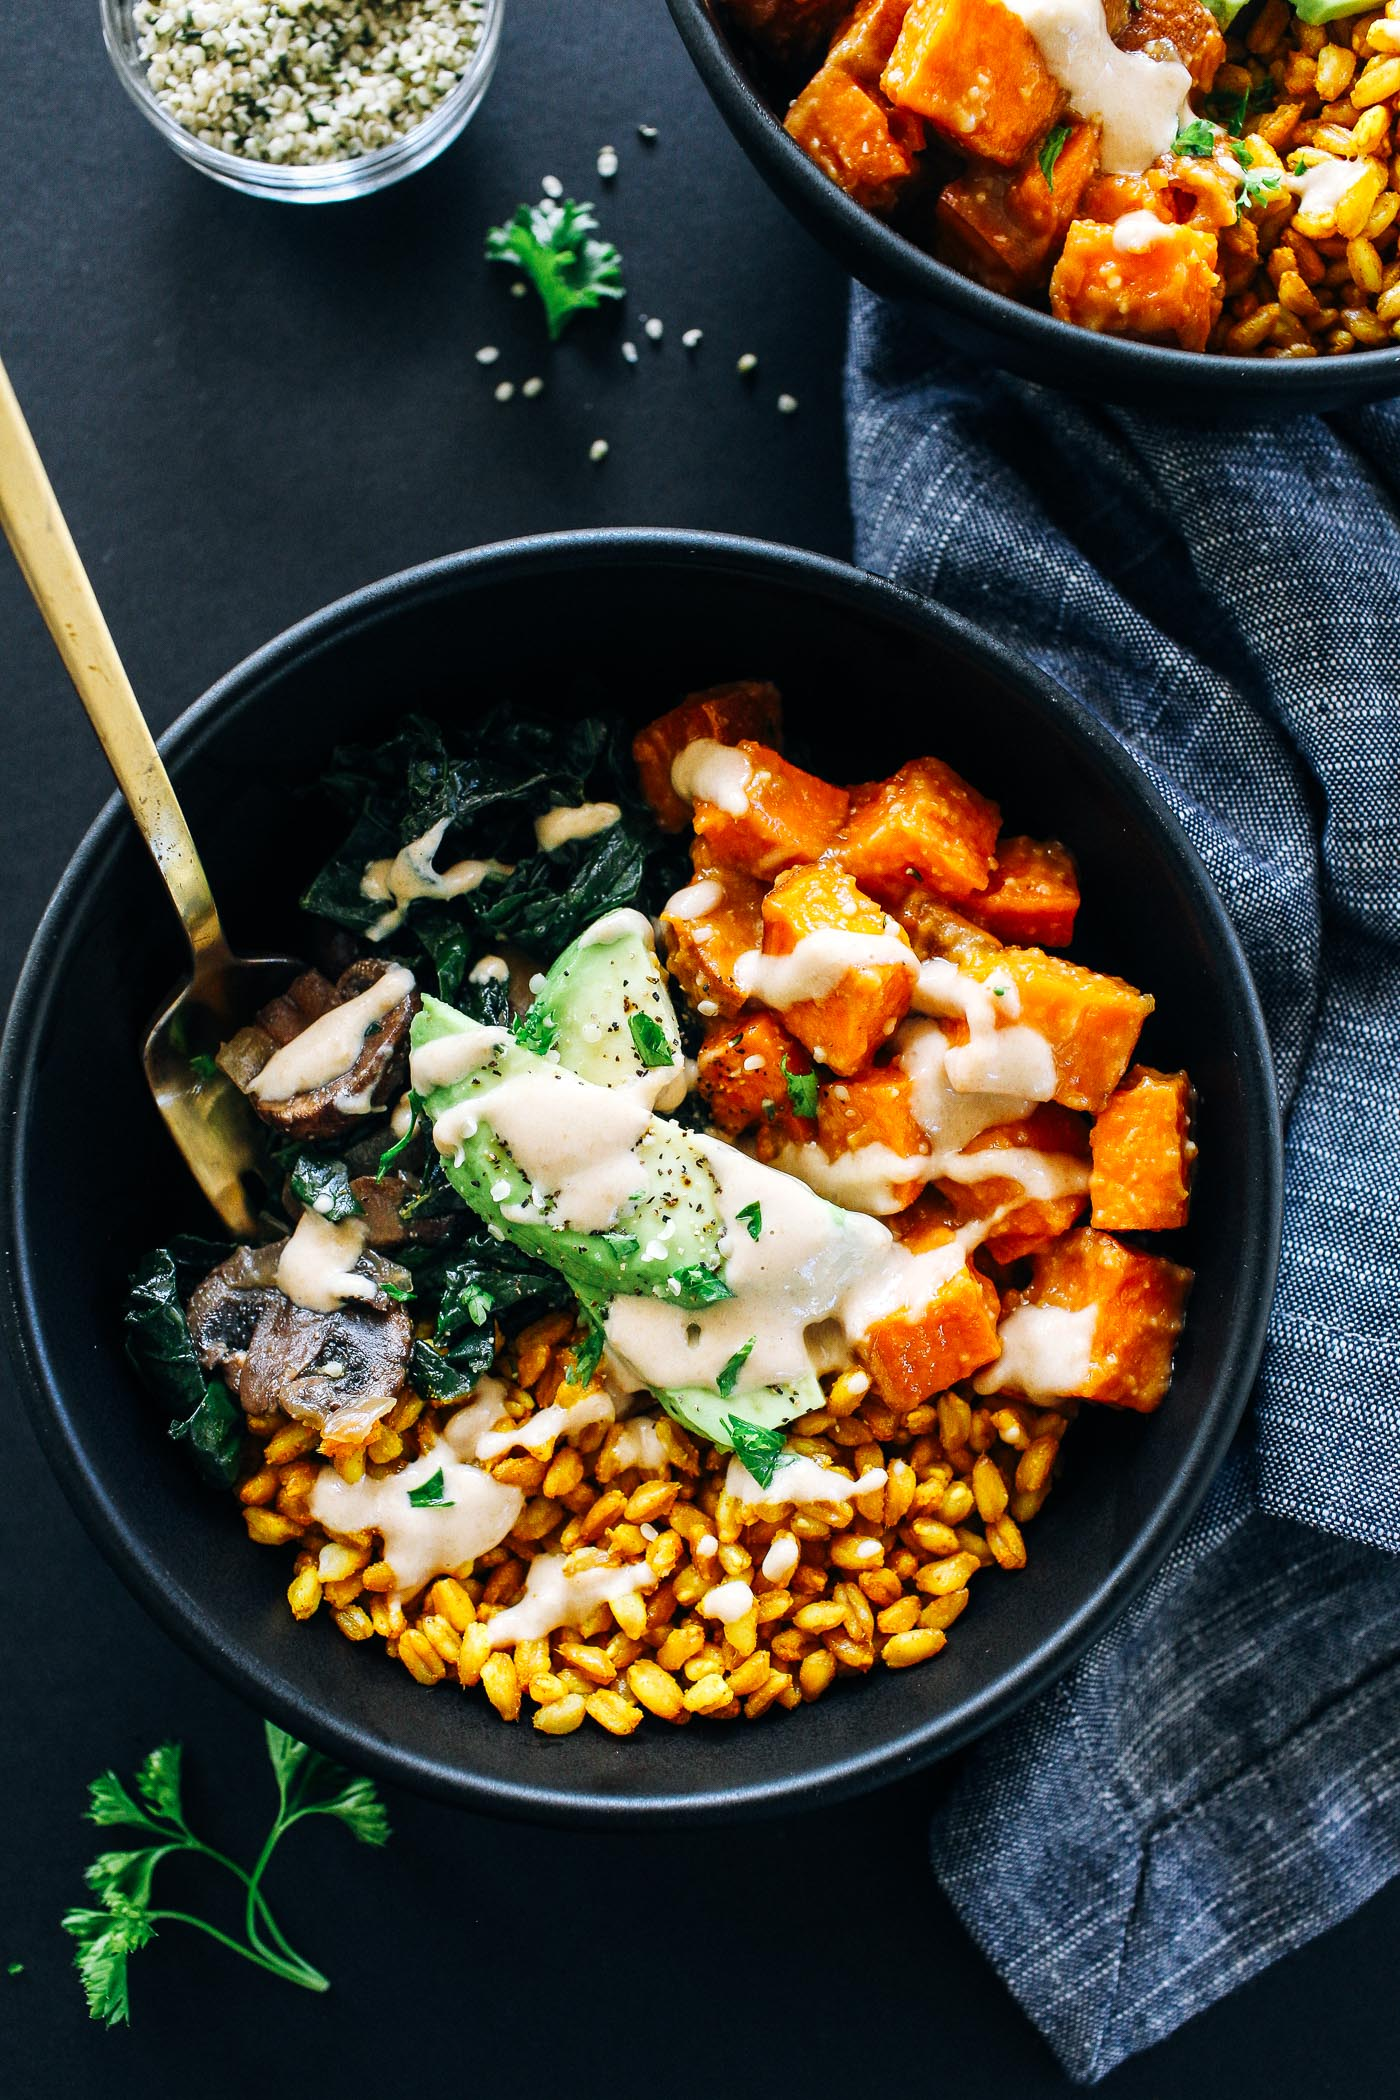 Miso Glazed Sweet Potato Bowls A Healthy Bowl Of Winters Best Vegetables Coated In A